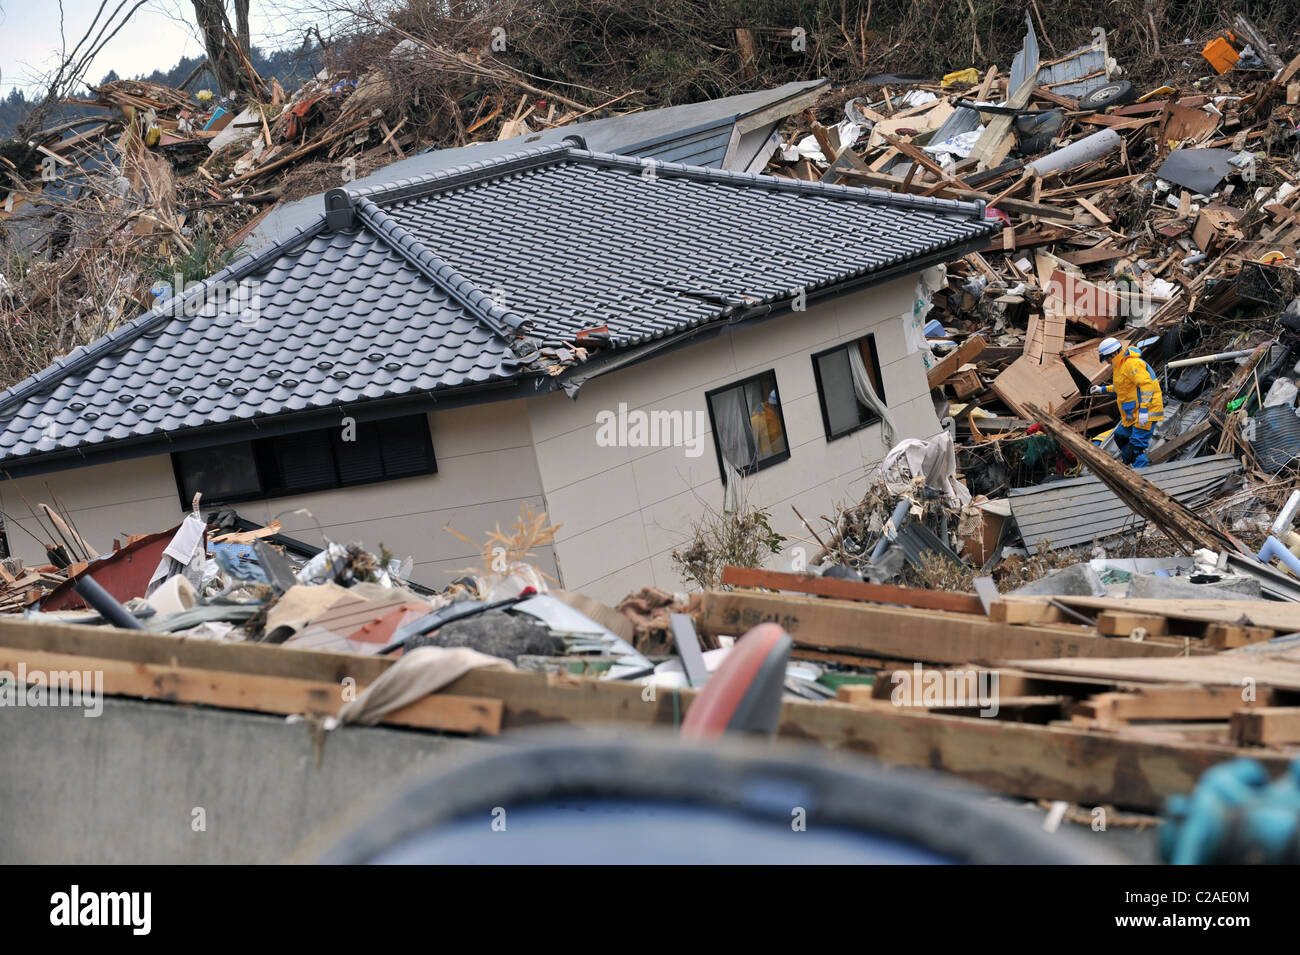 Japanese search and rescue teams search for survivors after thousands of homes were destroyed after a 9.0 Mw earthquake - Stock Image